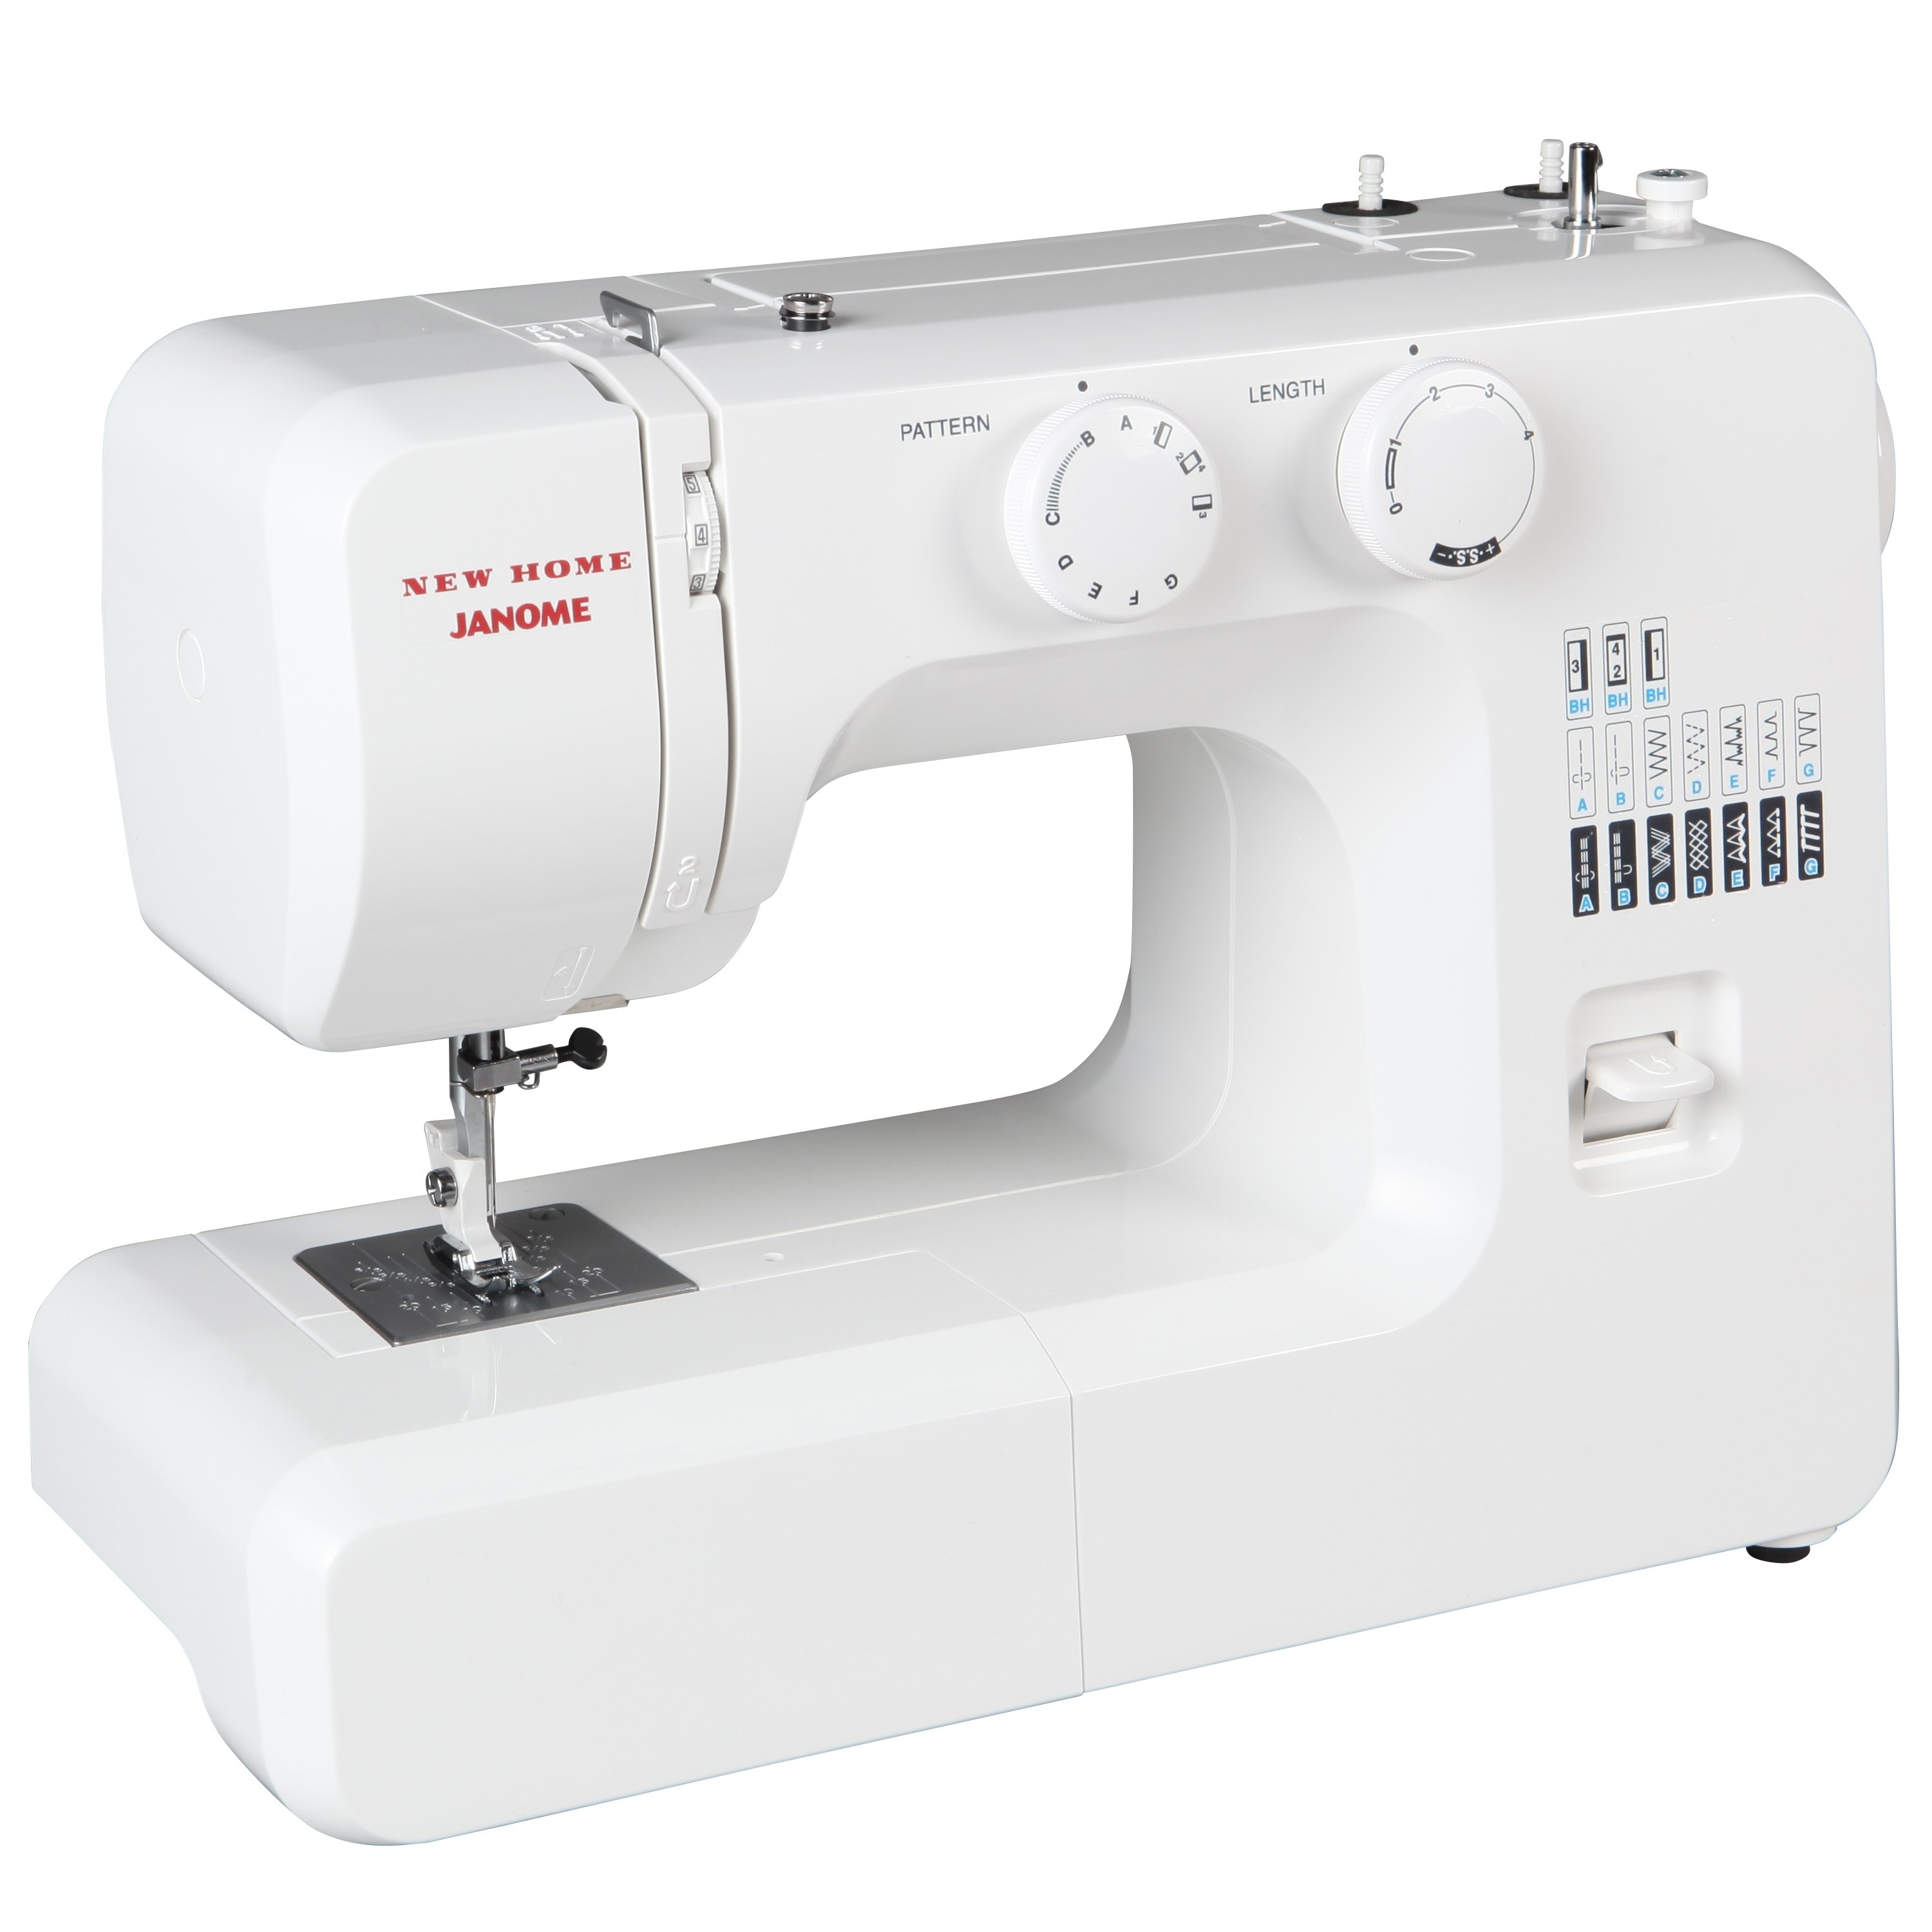 Shop Janome 41012 Easy-To-Use Sewing Machine with Aluminum Interior Frame,  Automatic Needle Threader, and Easy Stitch Selection - Free Shipping Today  ...